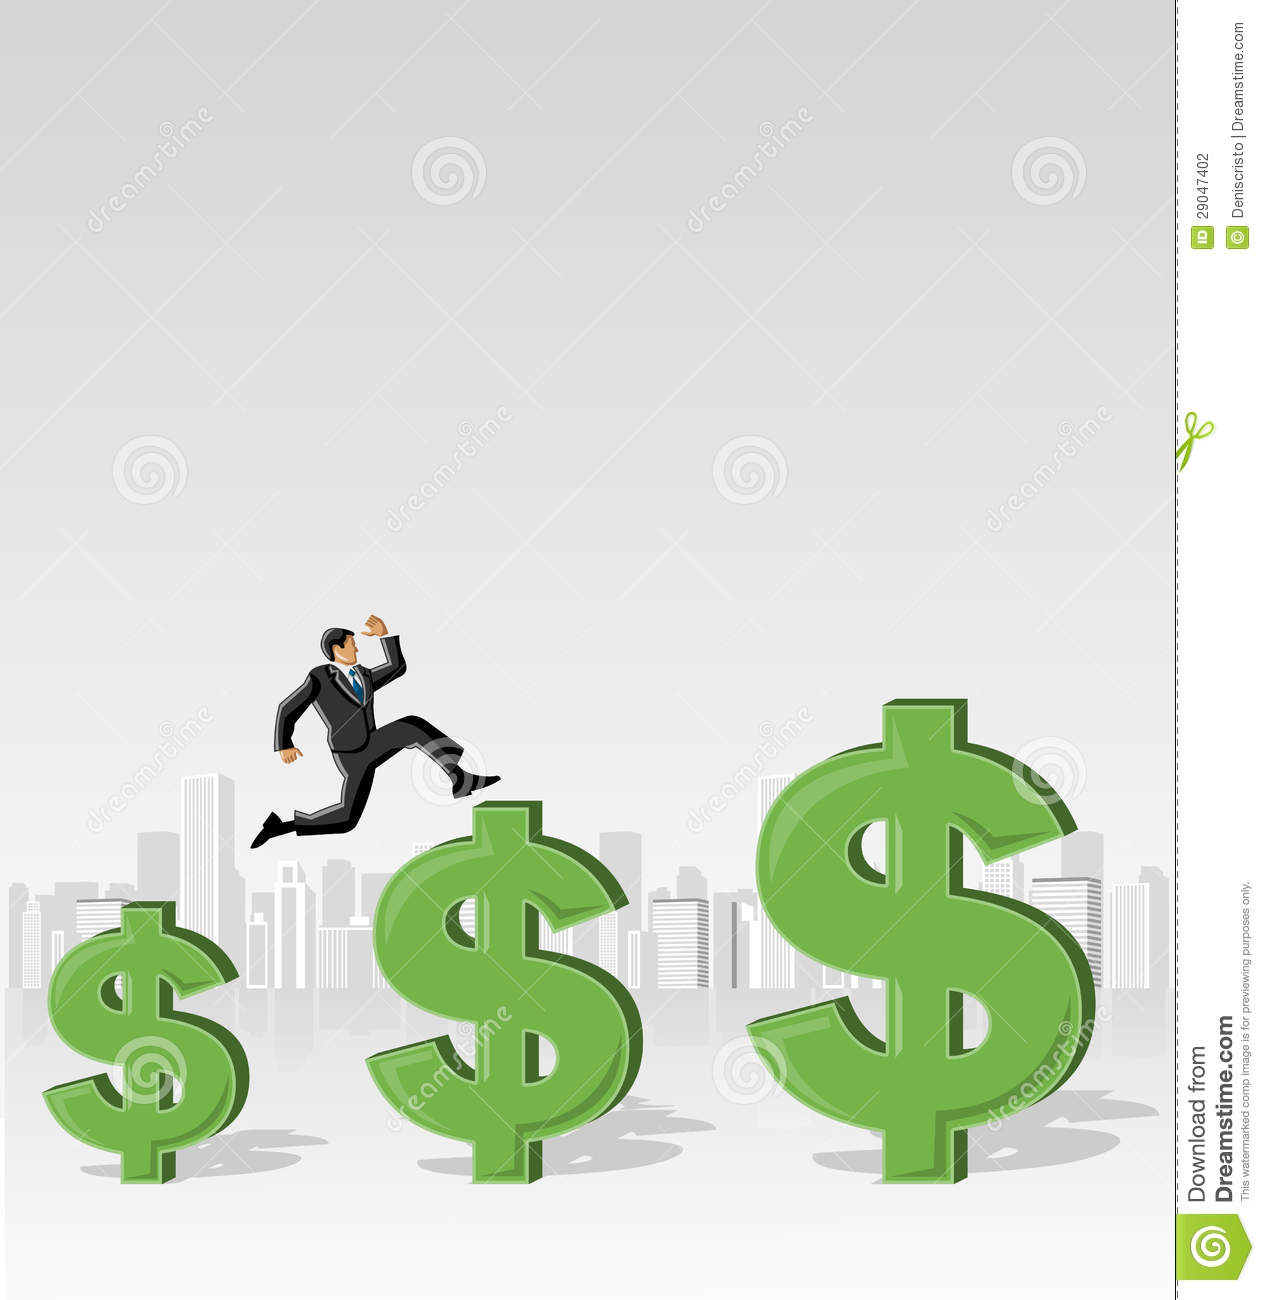 Jumping Over Money Symbols Stock Photography  Image 29047402